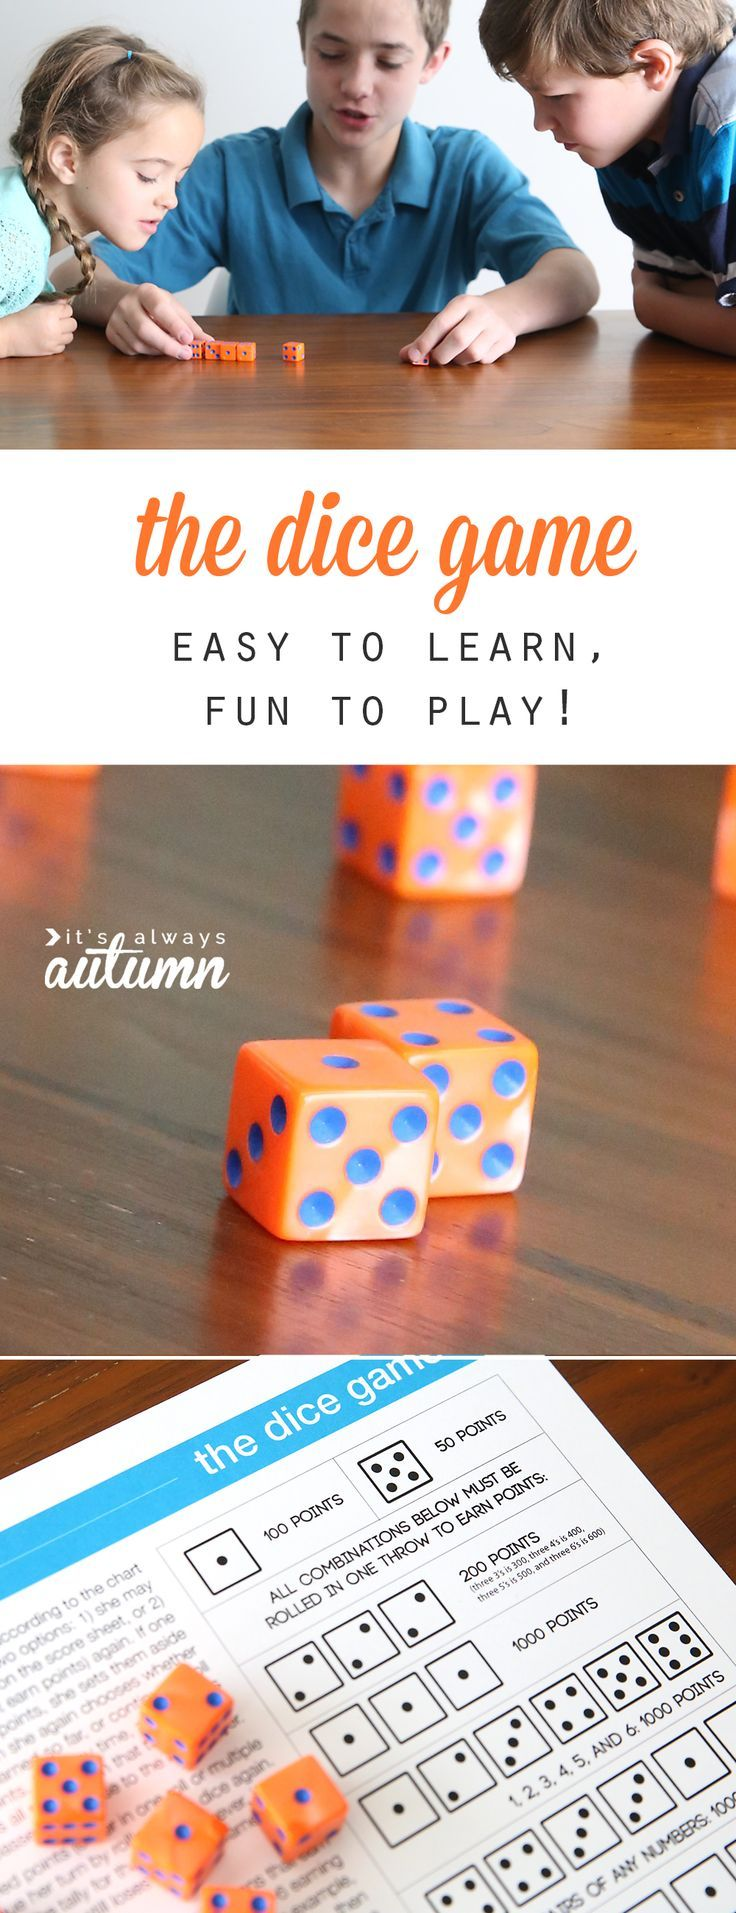 the dice game Easy games for kids, Free games for kids